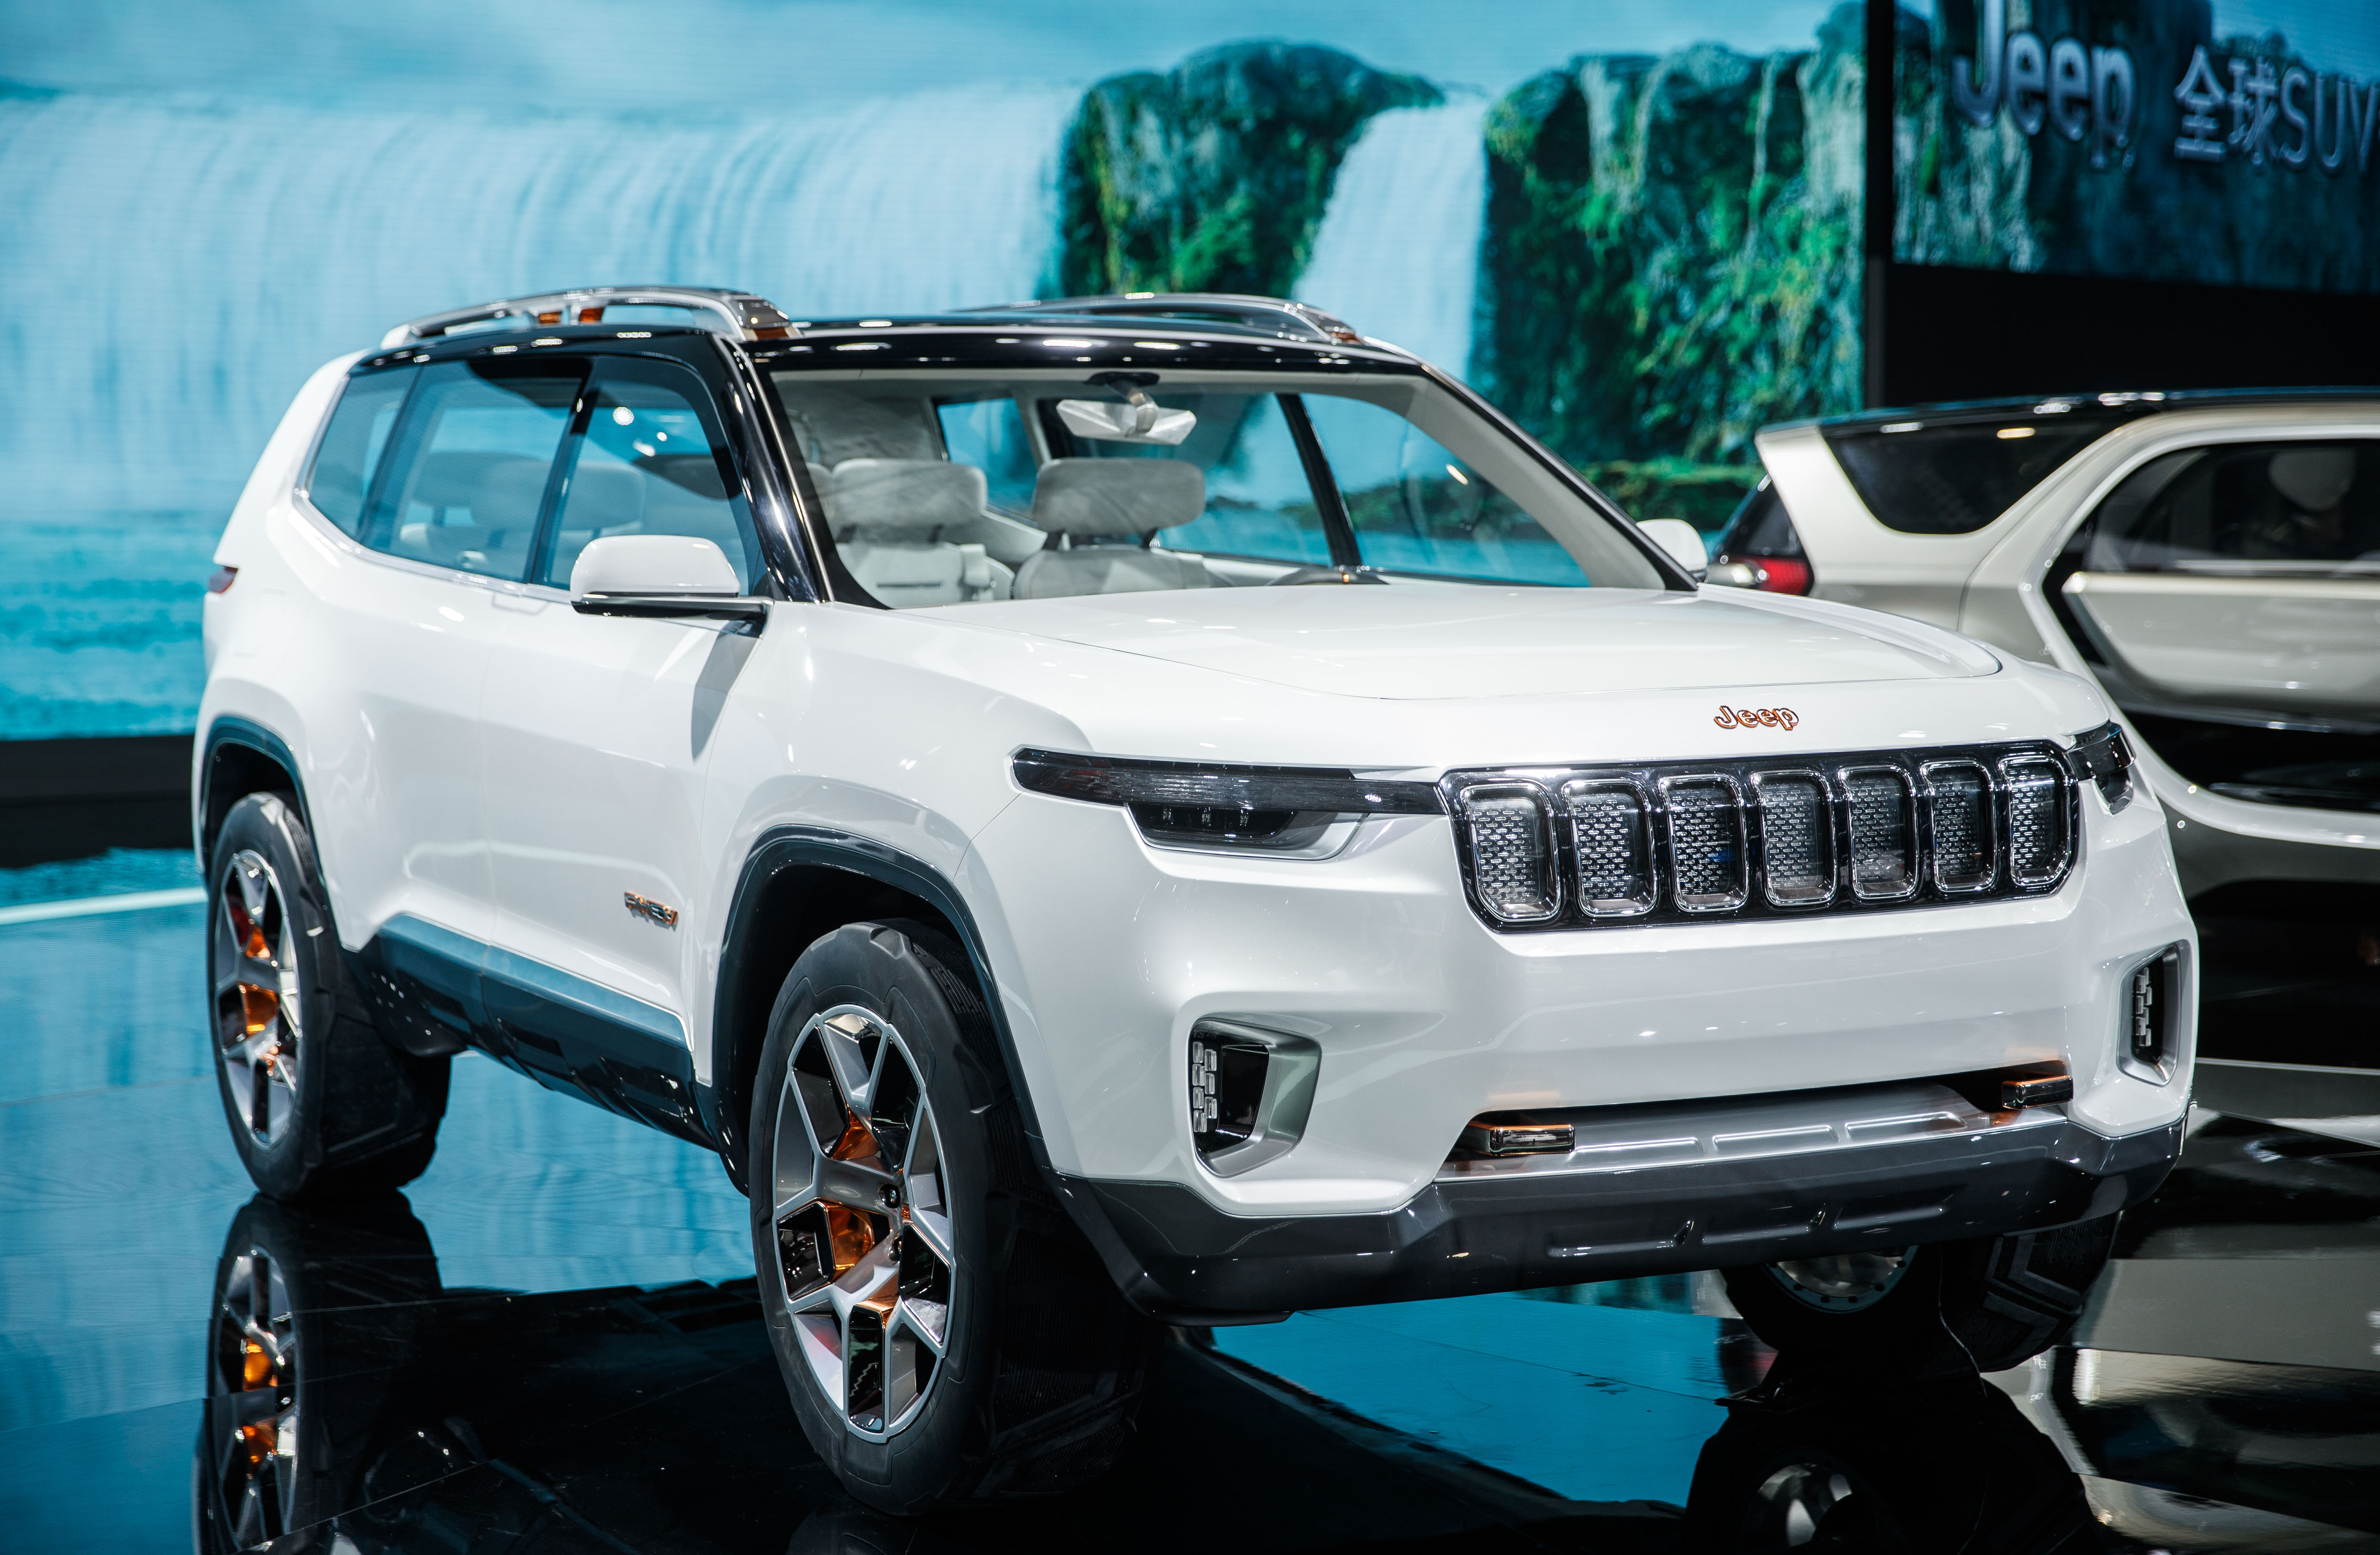 BMW Motorcycles Prices >> Jeep's plug-in hybrid SUV concept debuts with a ~40 miles all-electric range - Electrek